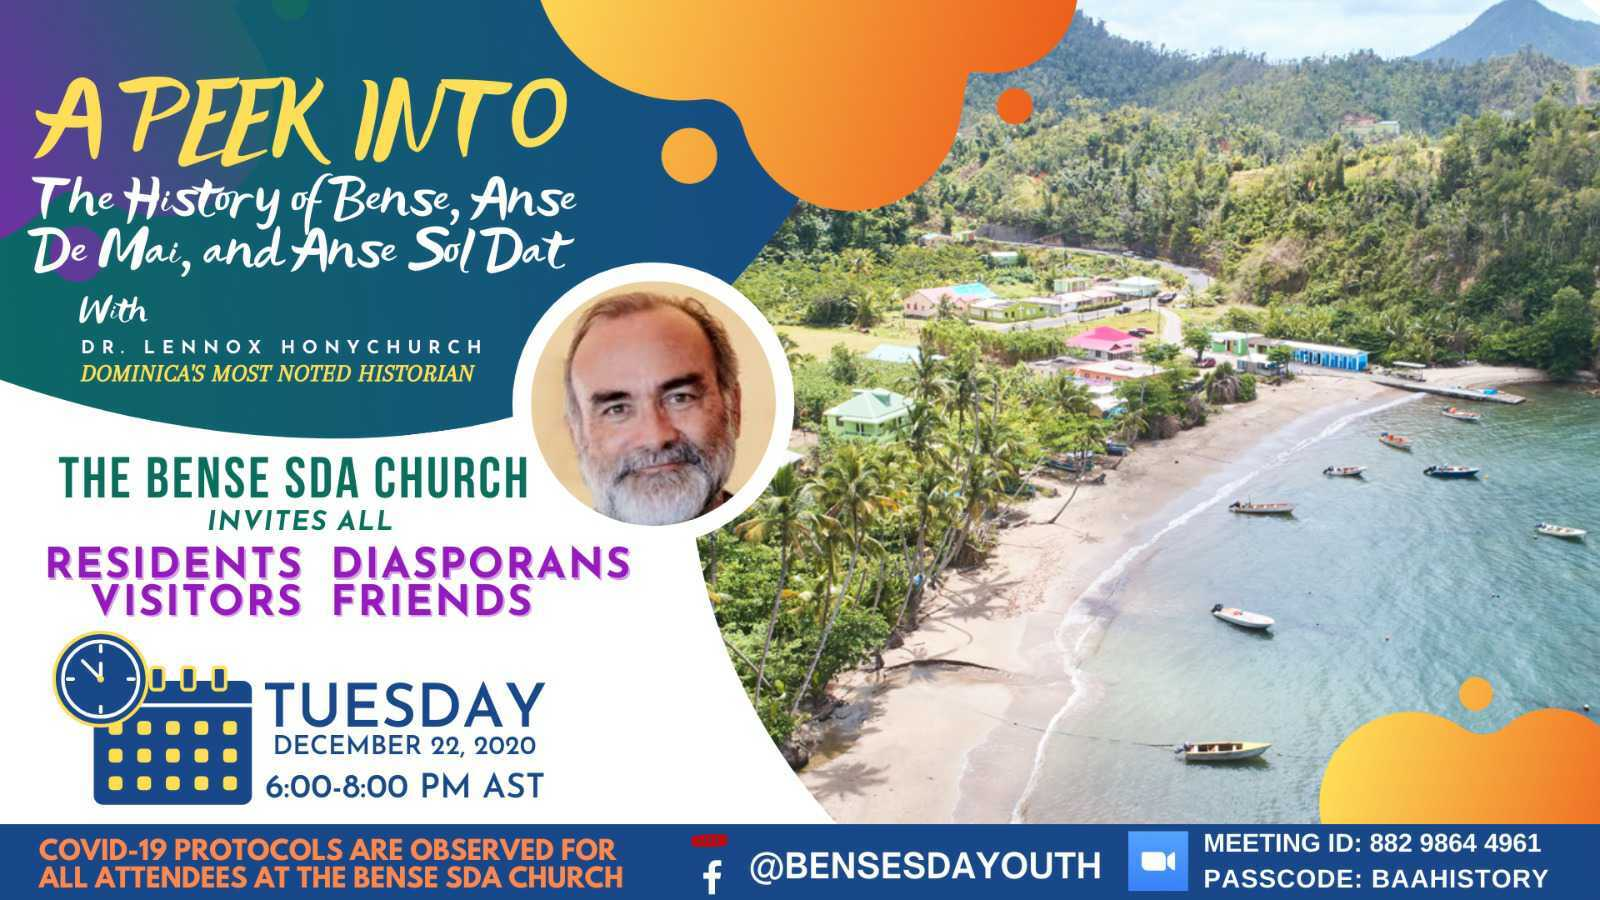 Announcement: History of Bense, Anse De Mai and Anse Sol Dat by Dr. Lennox Honychurch